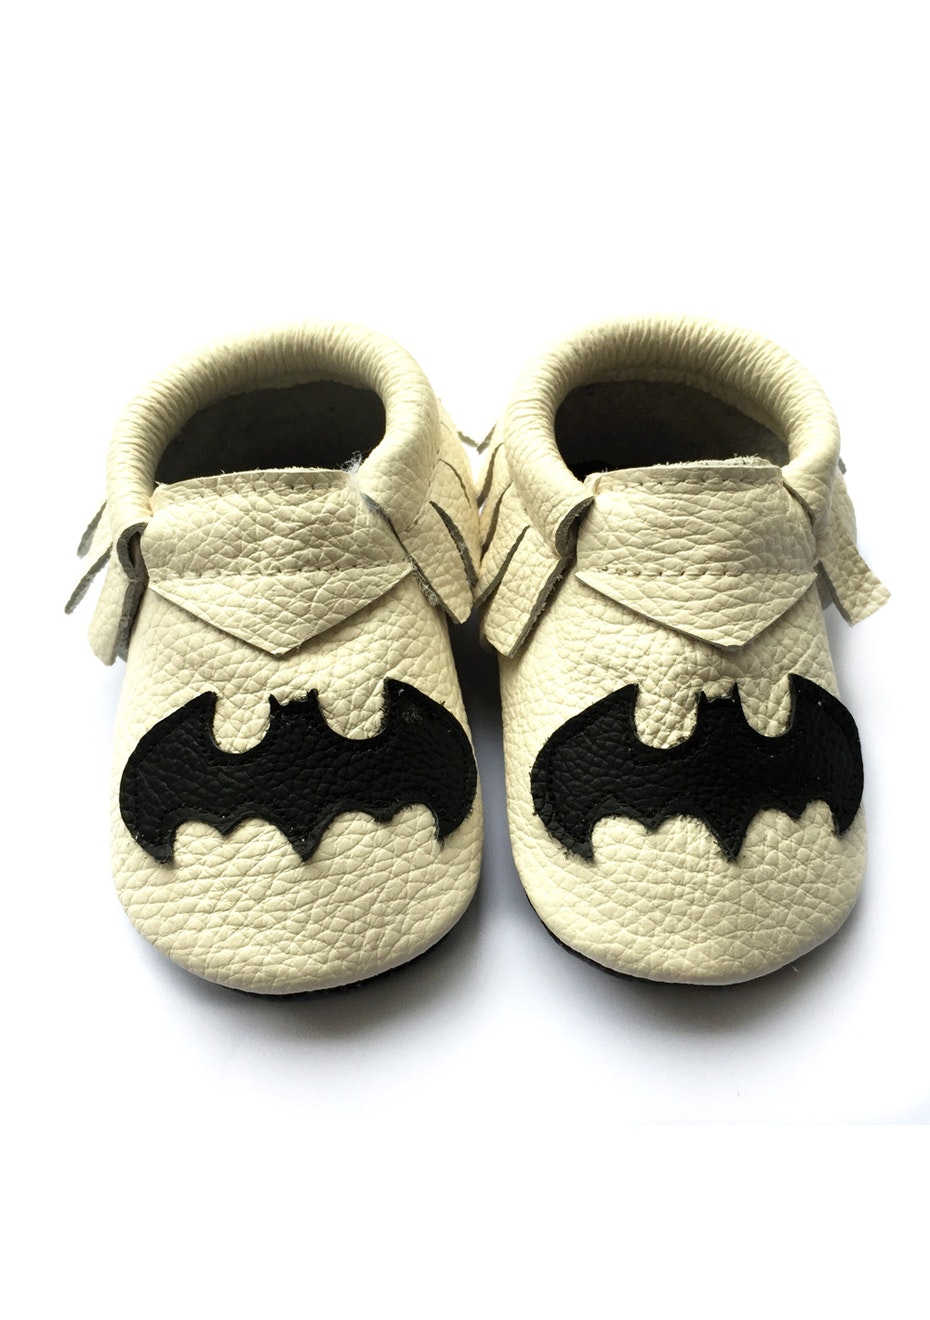 Baby  Leather Shoes - Beige/Black Bat